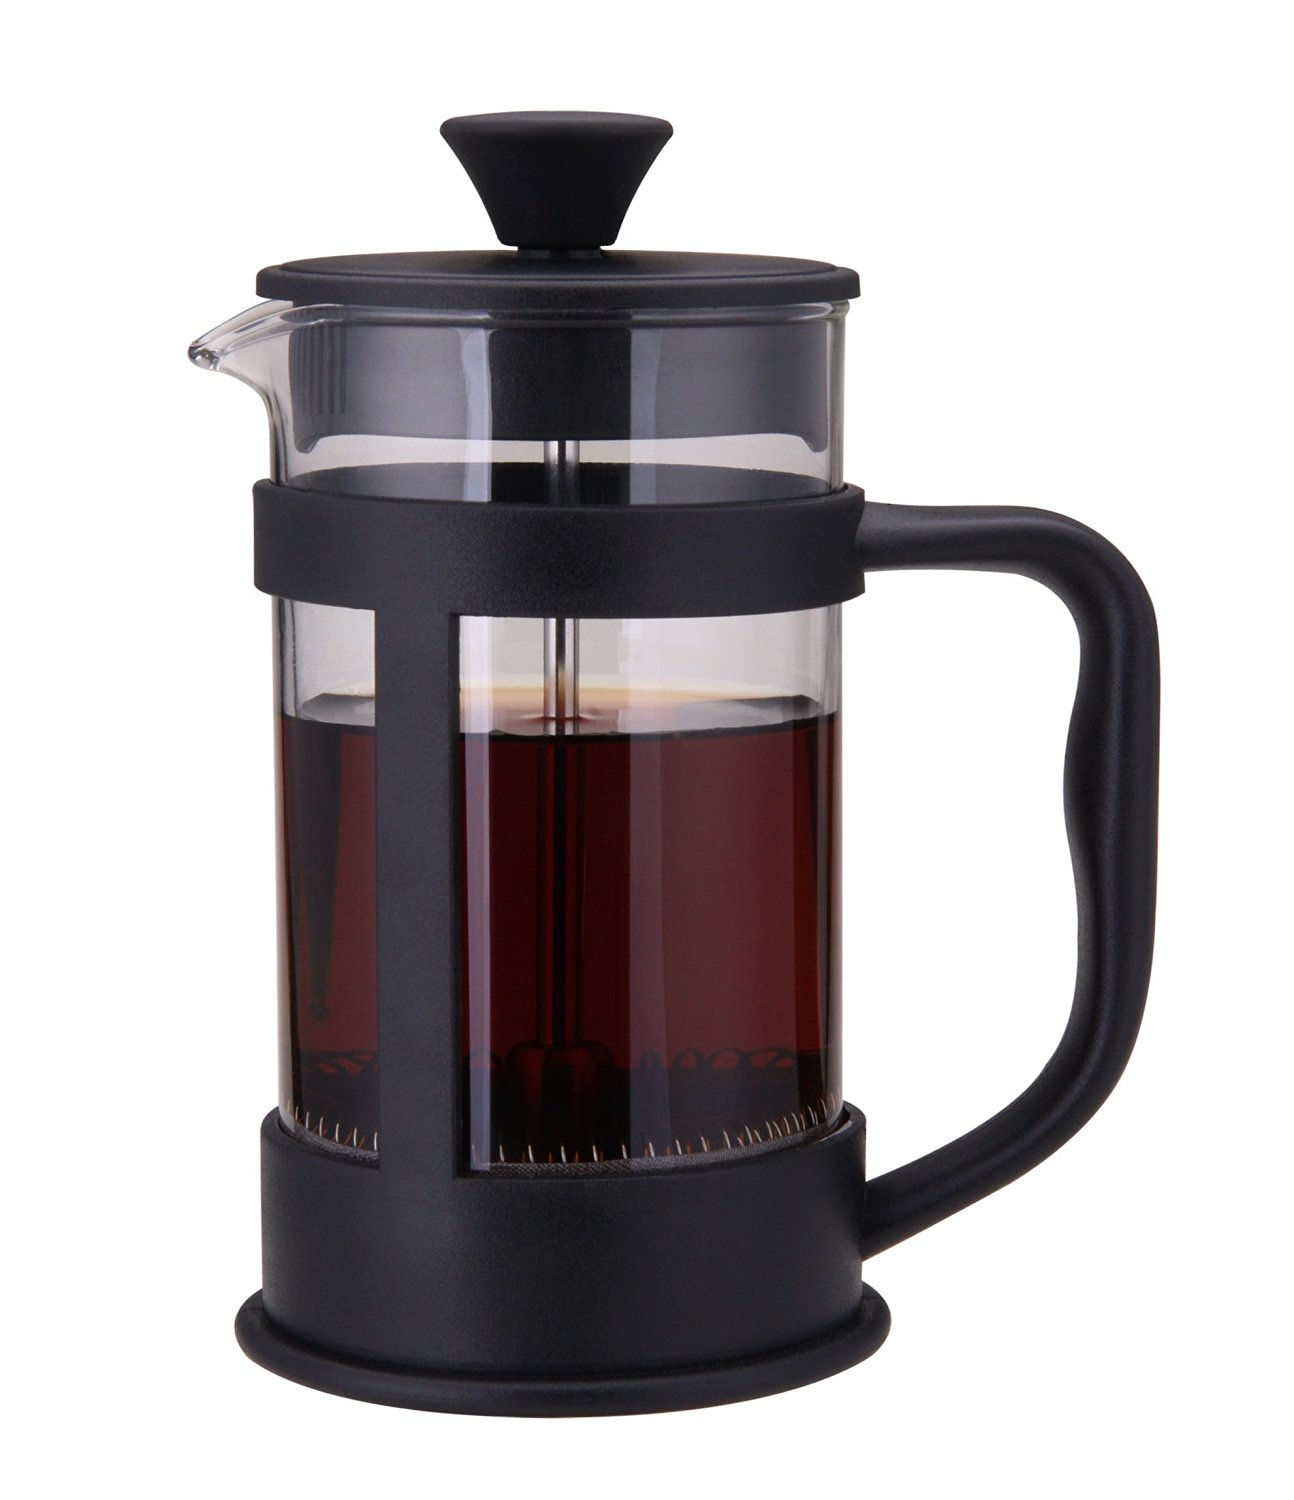 BEST FRENCH PRESS COFFEE MAKER & TEA BREWING for the best Cup of Coffee & Tea You've Ever Tasted. Makes The Perfect Gift. The High Quality, Heat Resistant Borosilicate Glass & 3 part Stainless Steel Plunger brings premium coffee & tea extraction in this French 1000 ml/ 8 cup Coffee Press